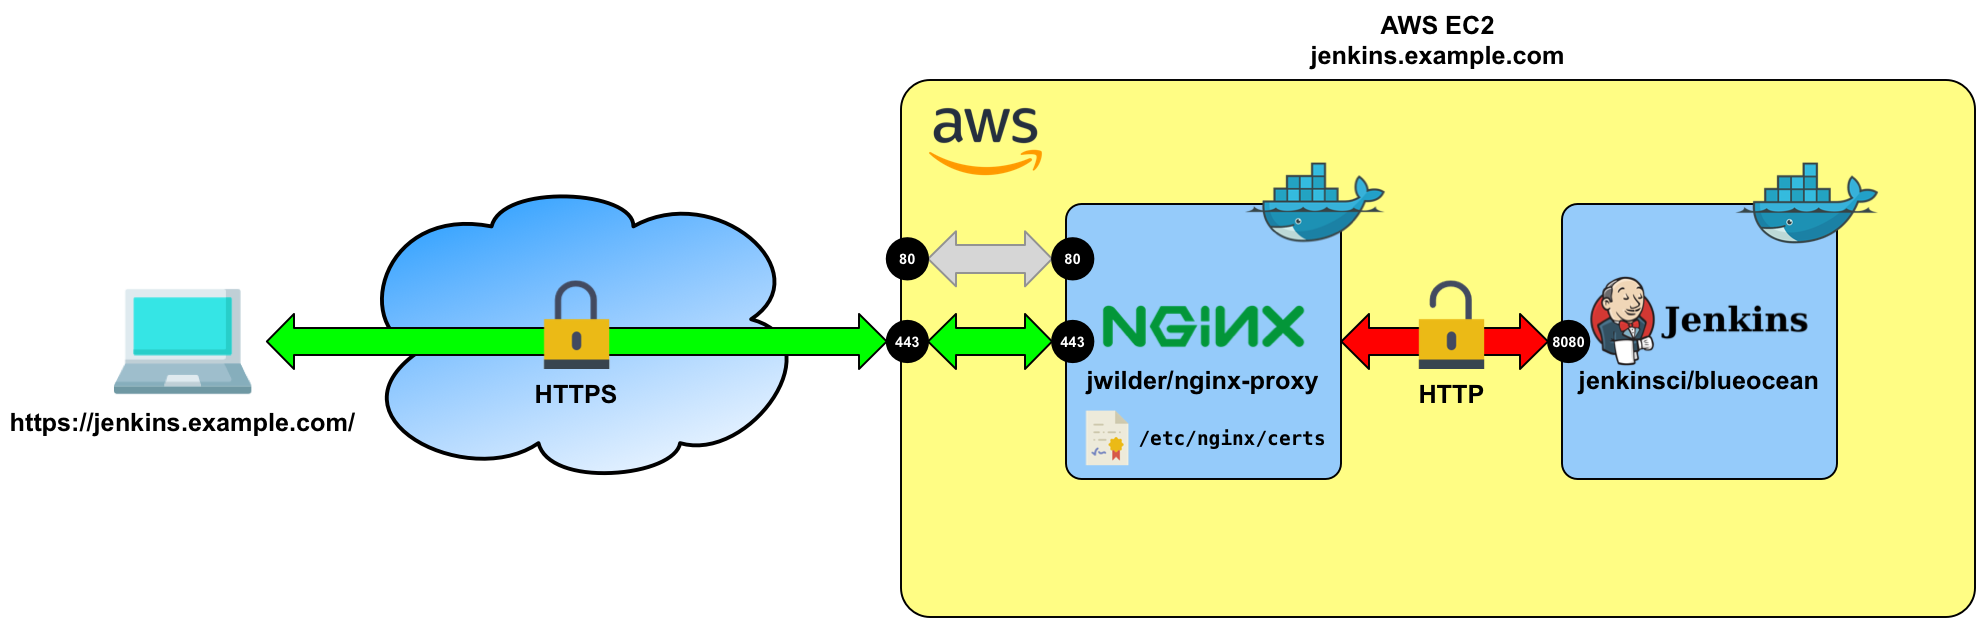 Jenkins with HTTPS Using NGINX and Docker - ITNEXT